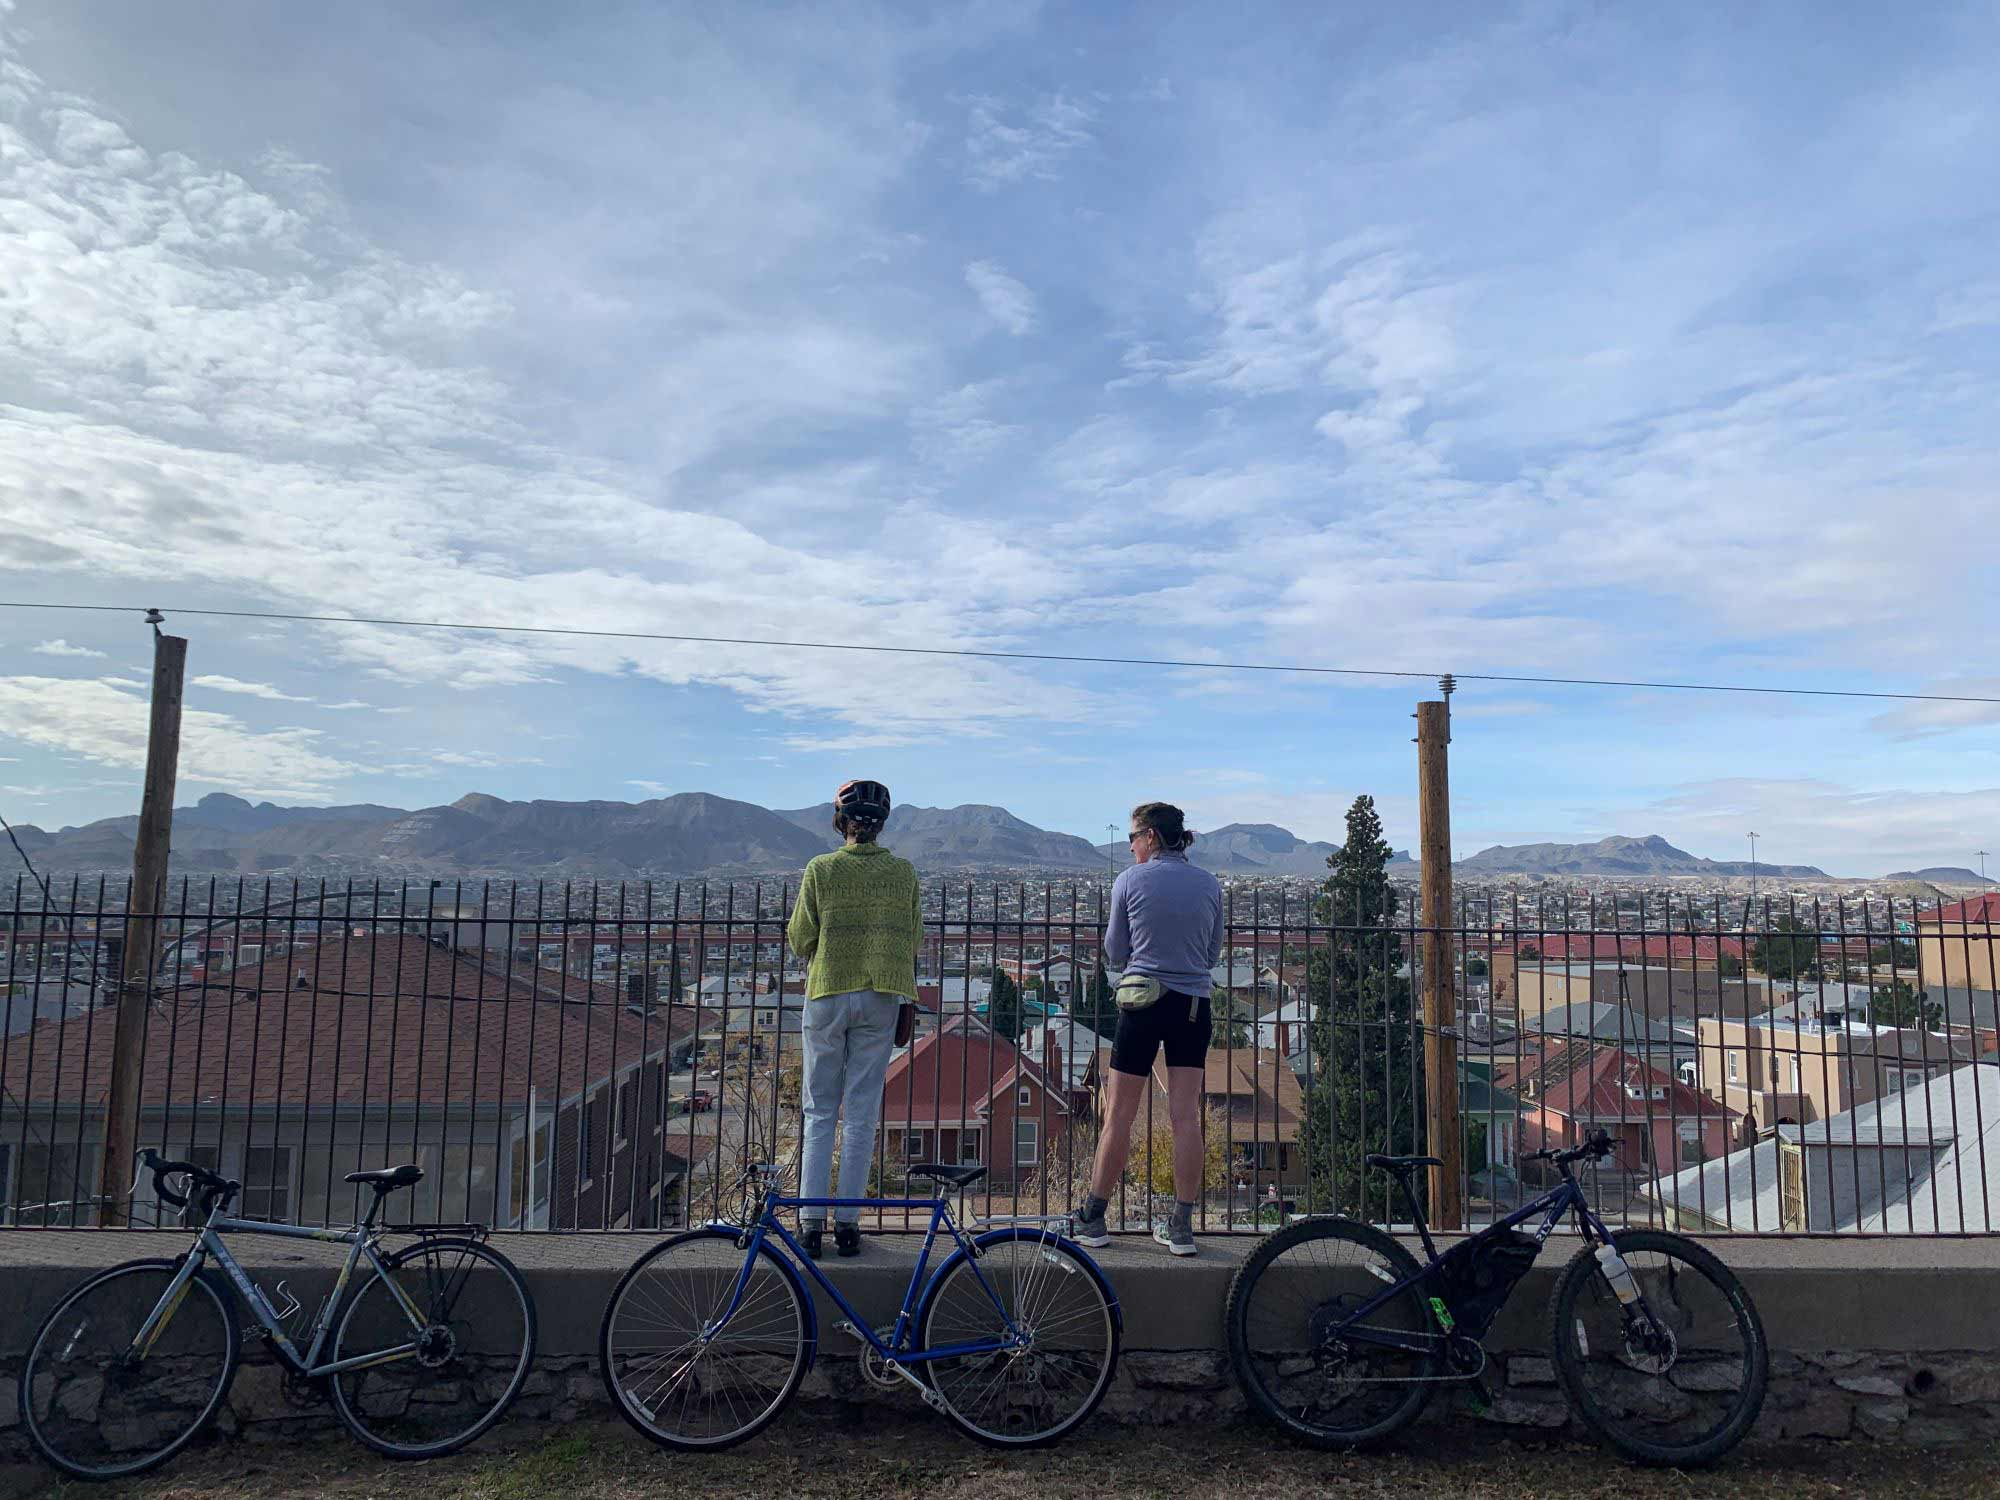 Bike ride to Franklin Mountains, El Paso, TX Photograph: Hannah Ennis